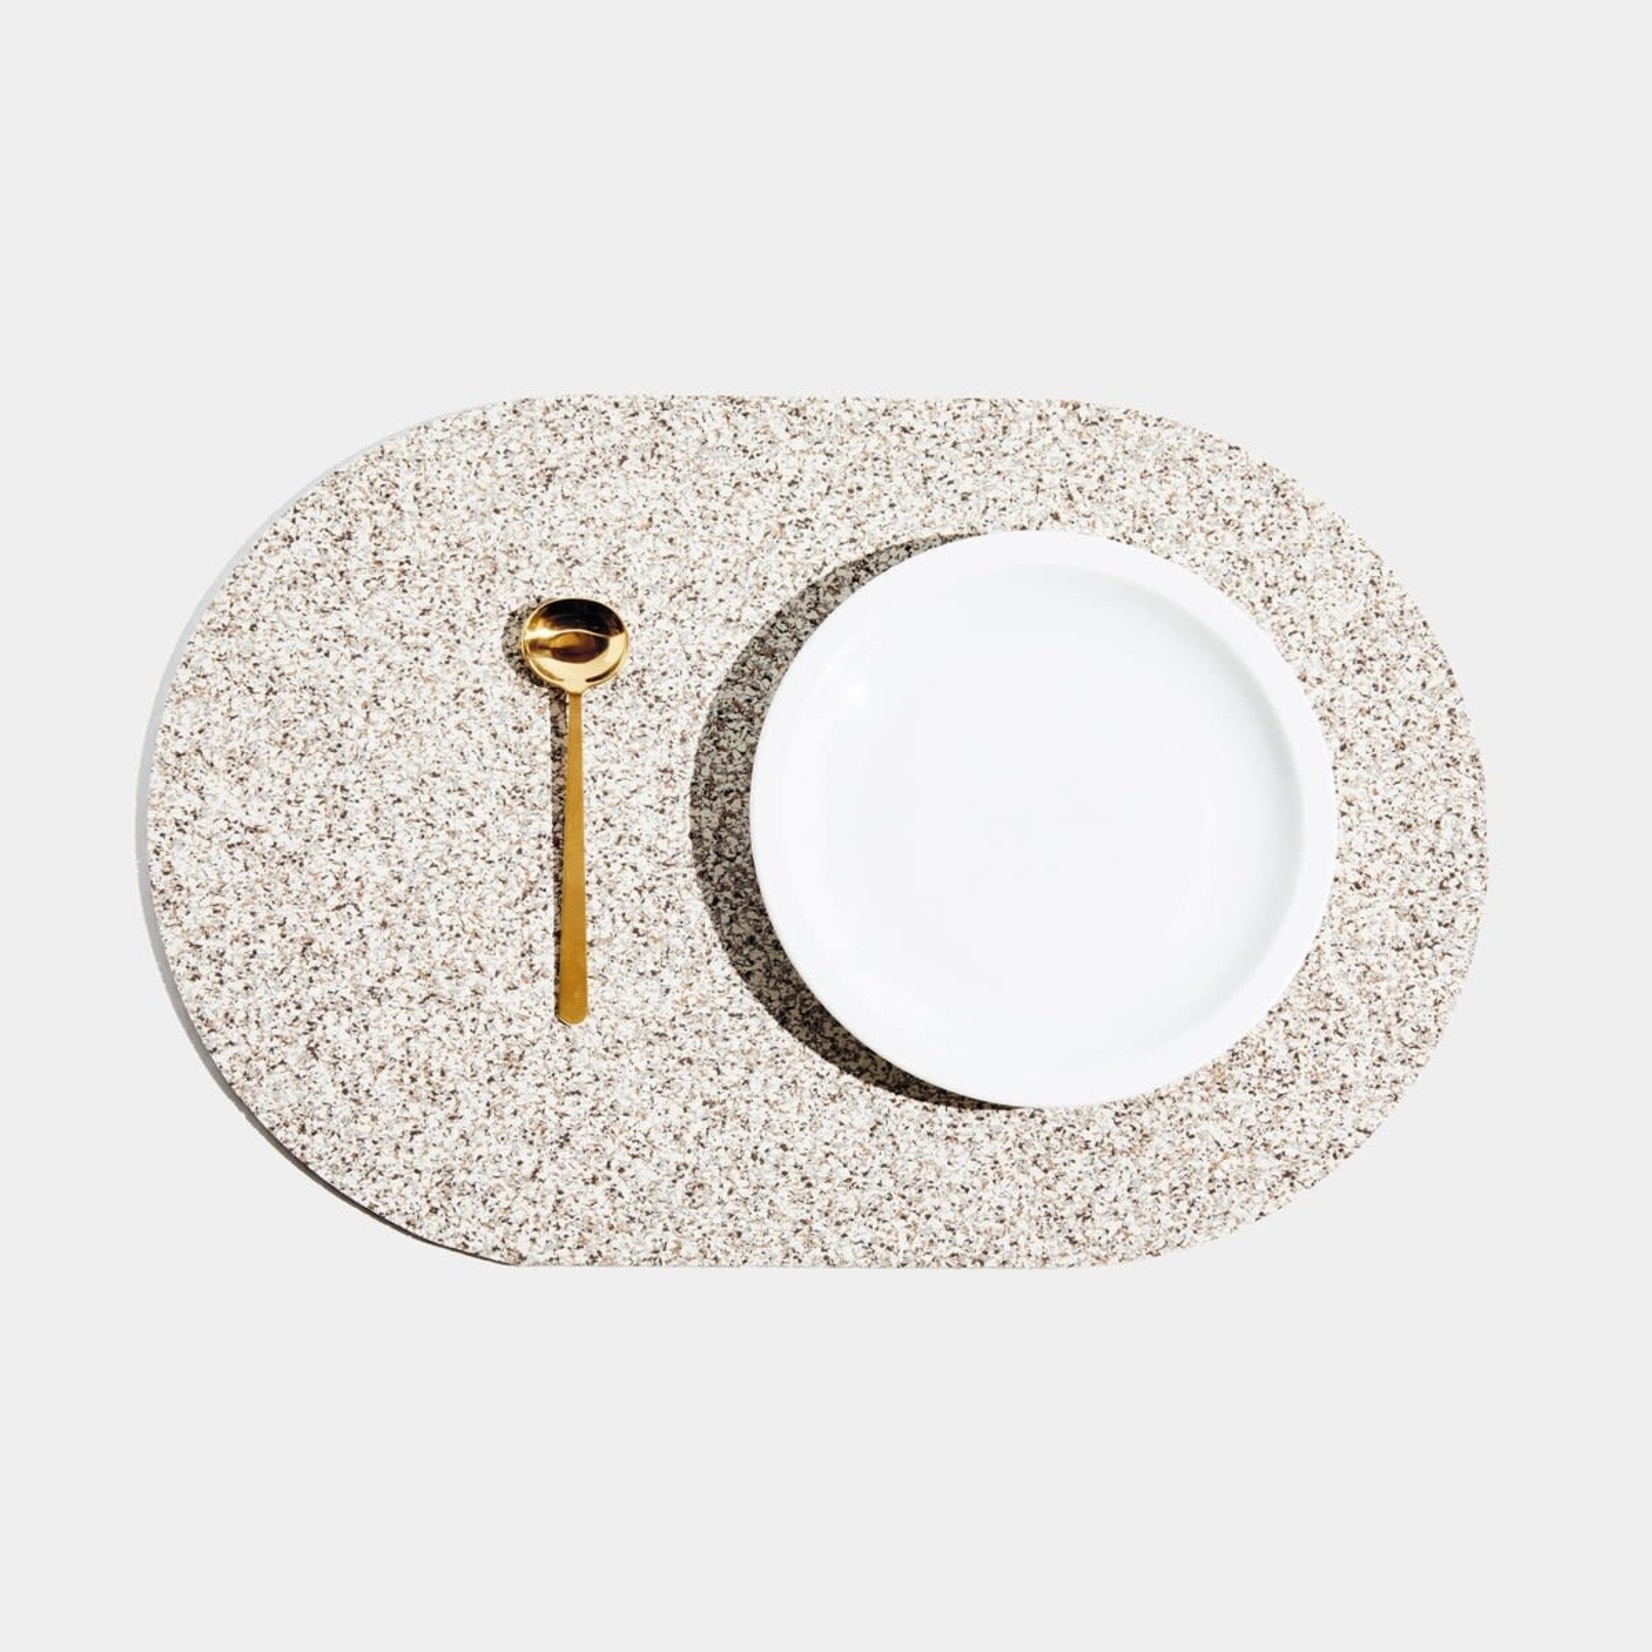 Slash Objects Slashed Objects Capsule Placemat Sand